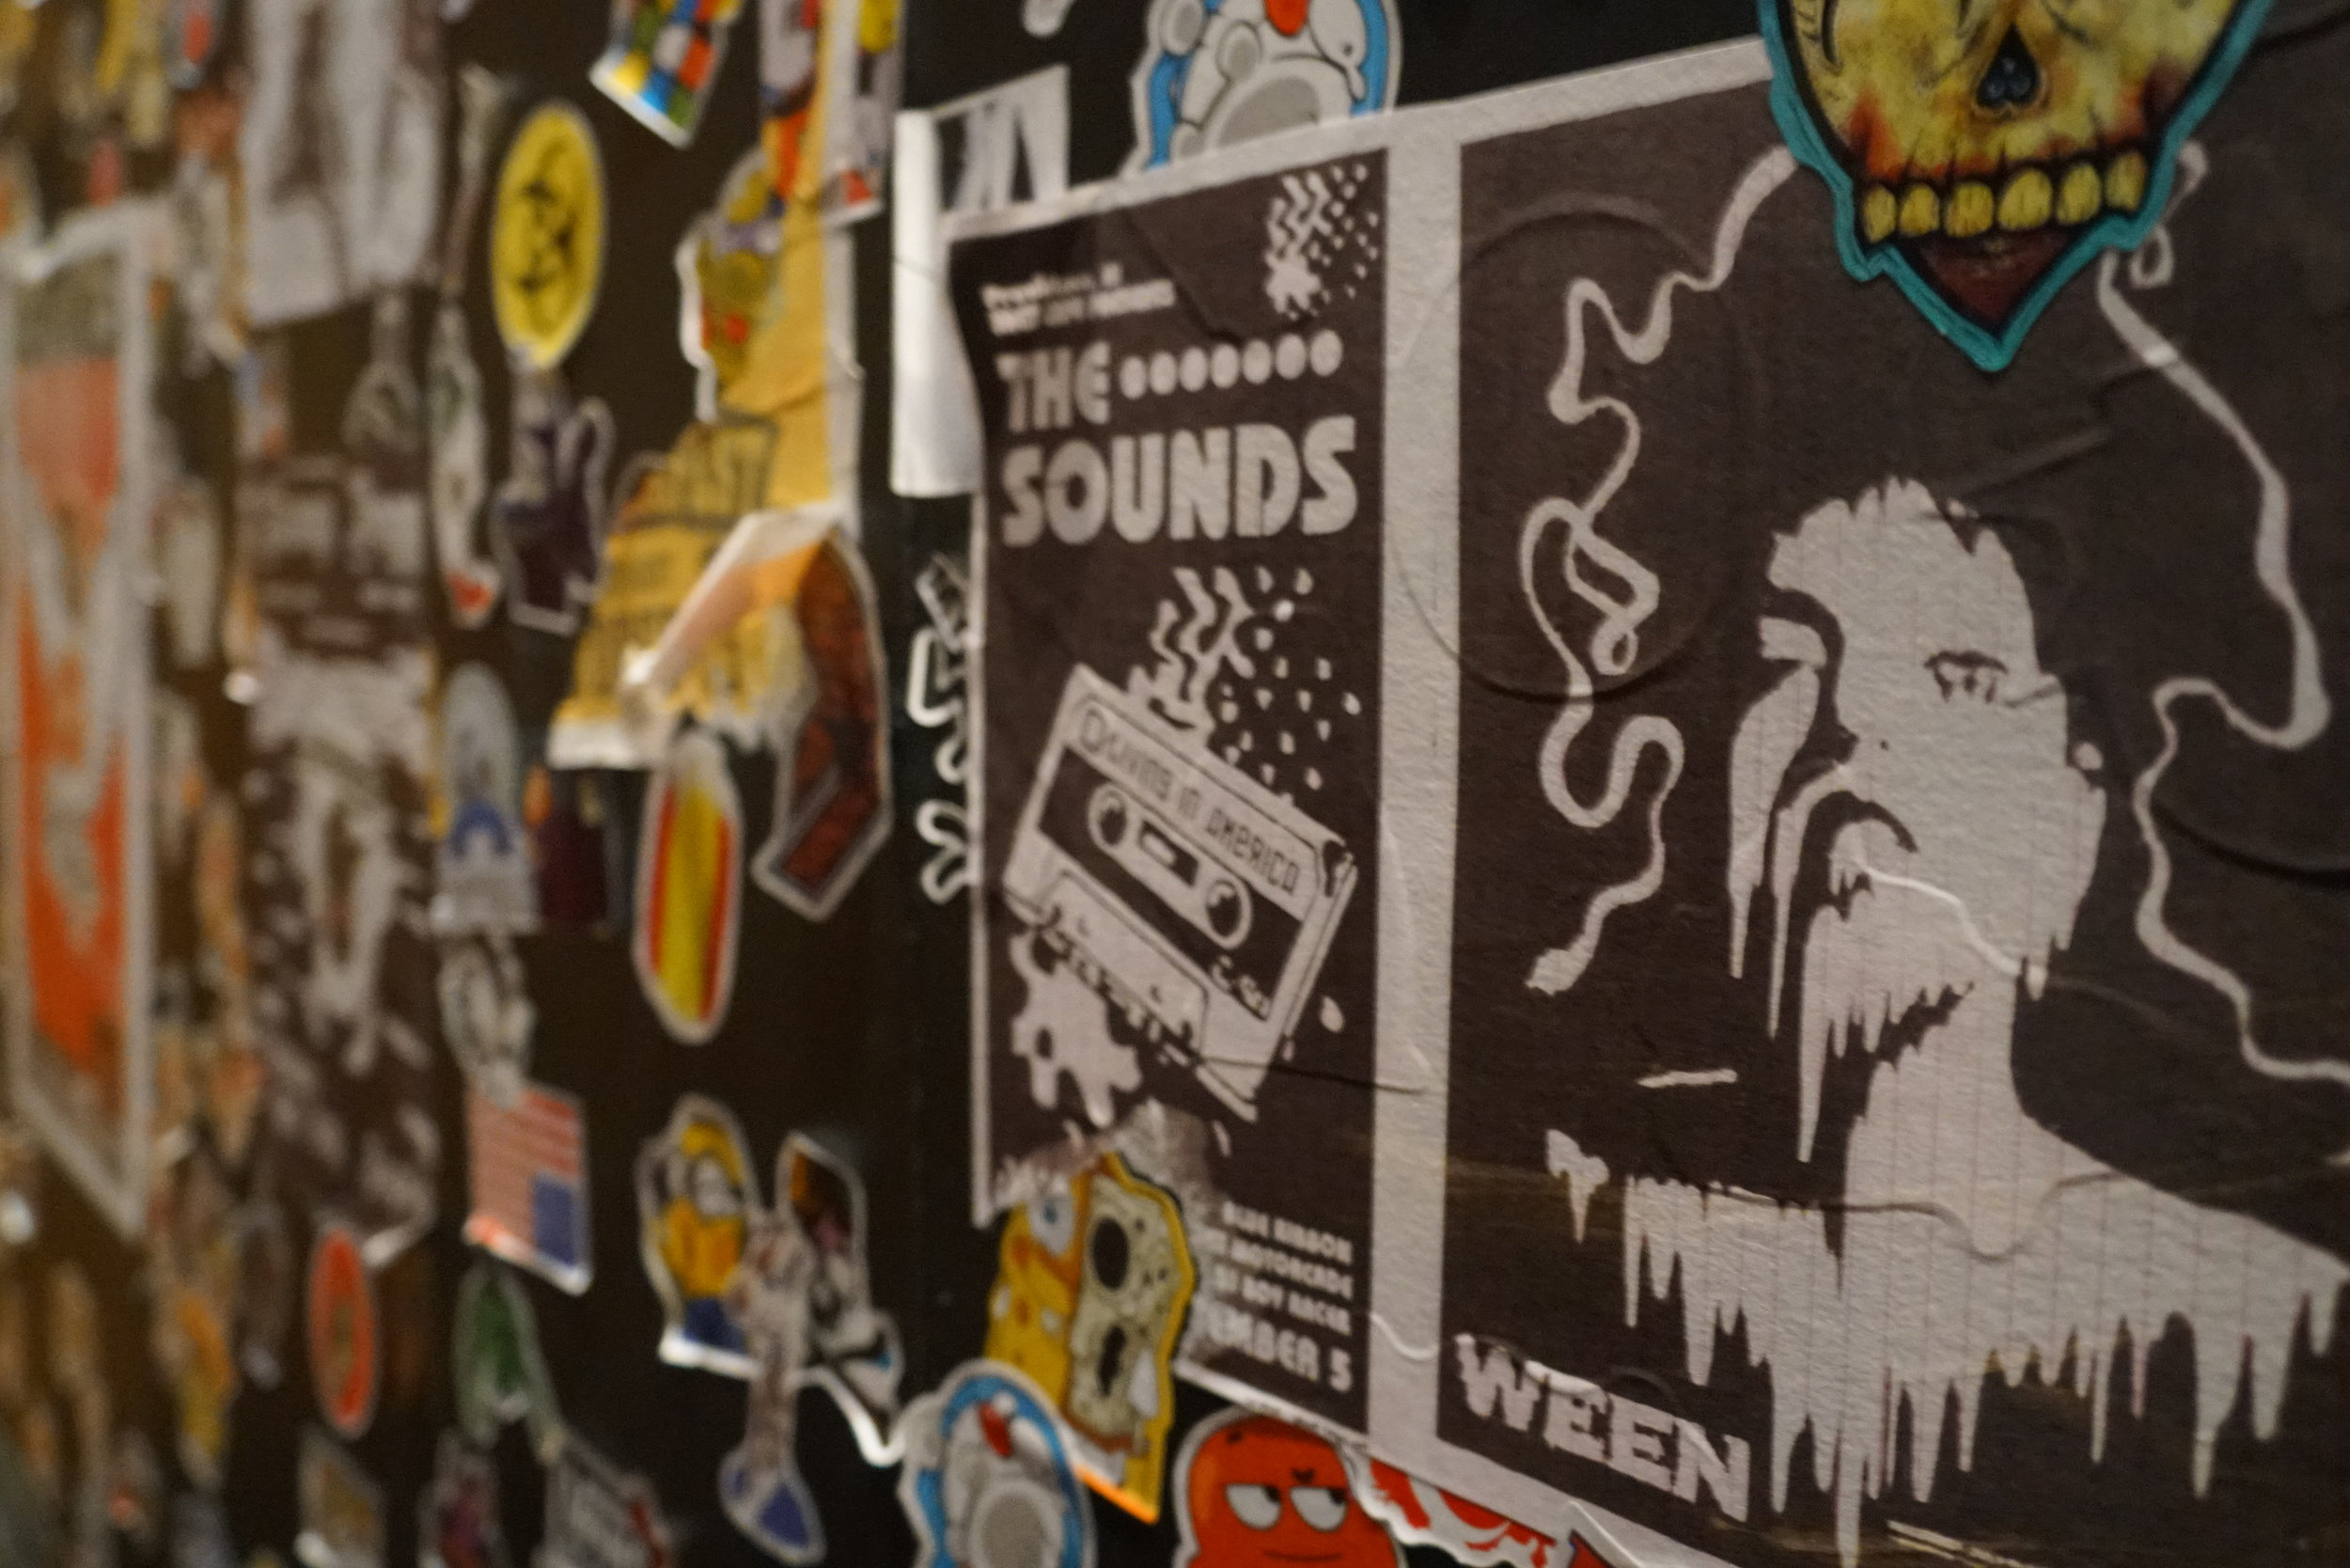 Vintage Stickers and Posters